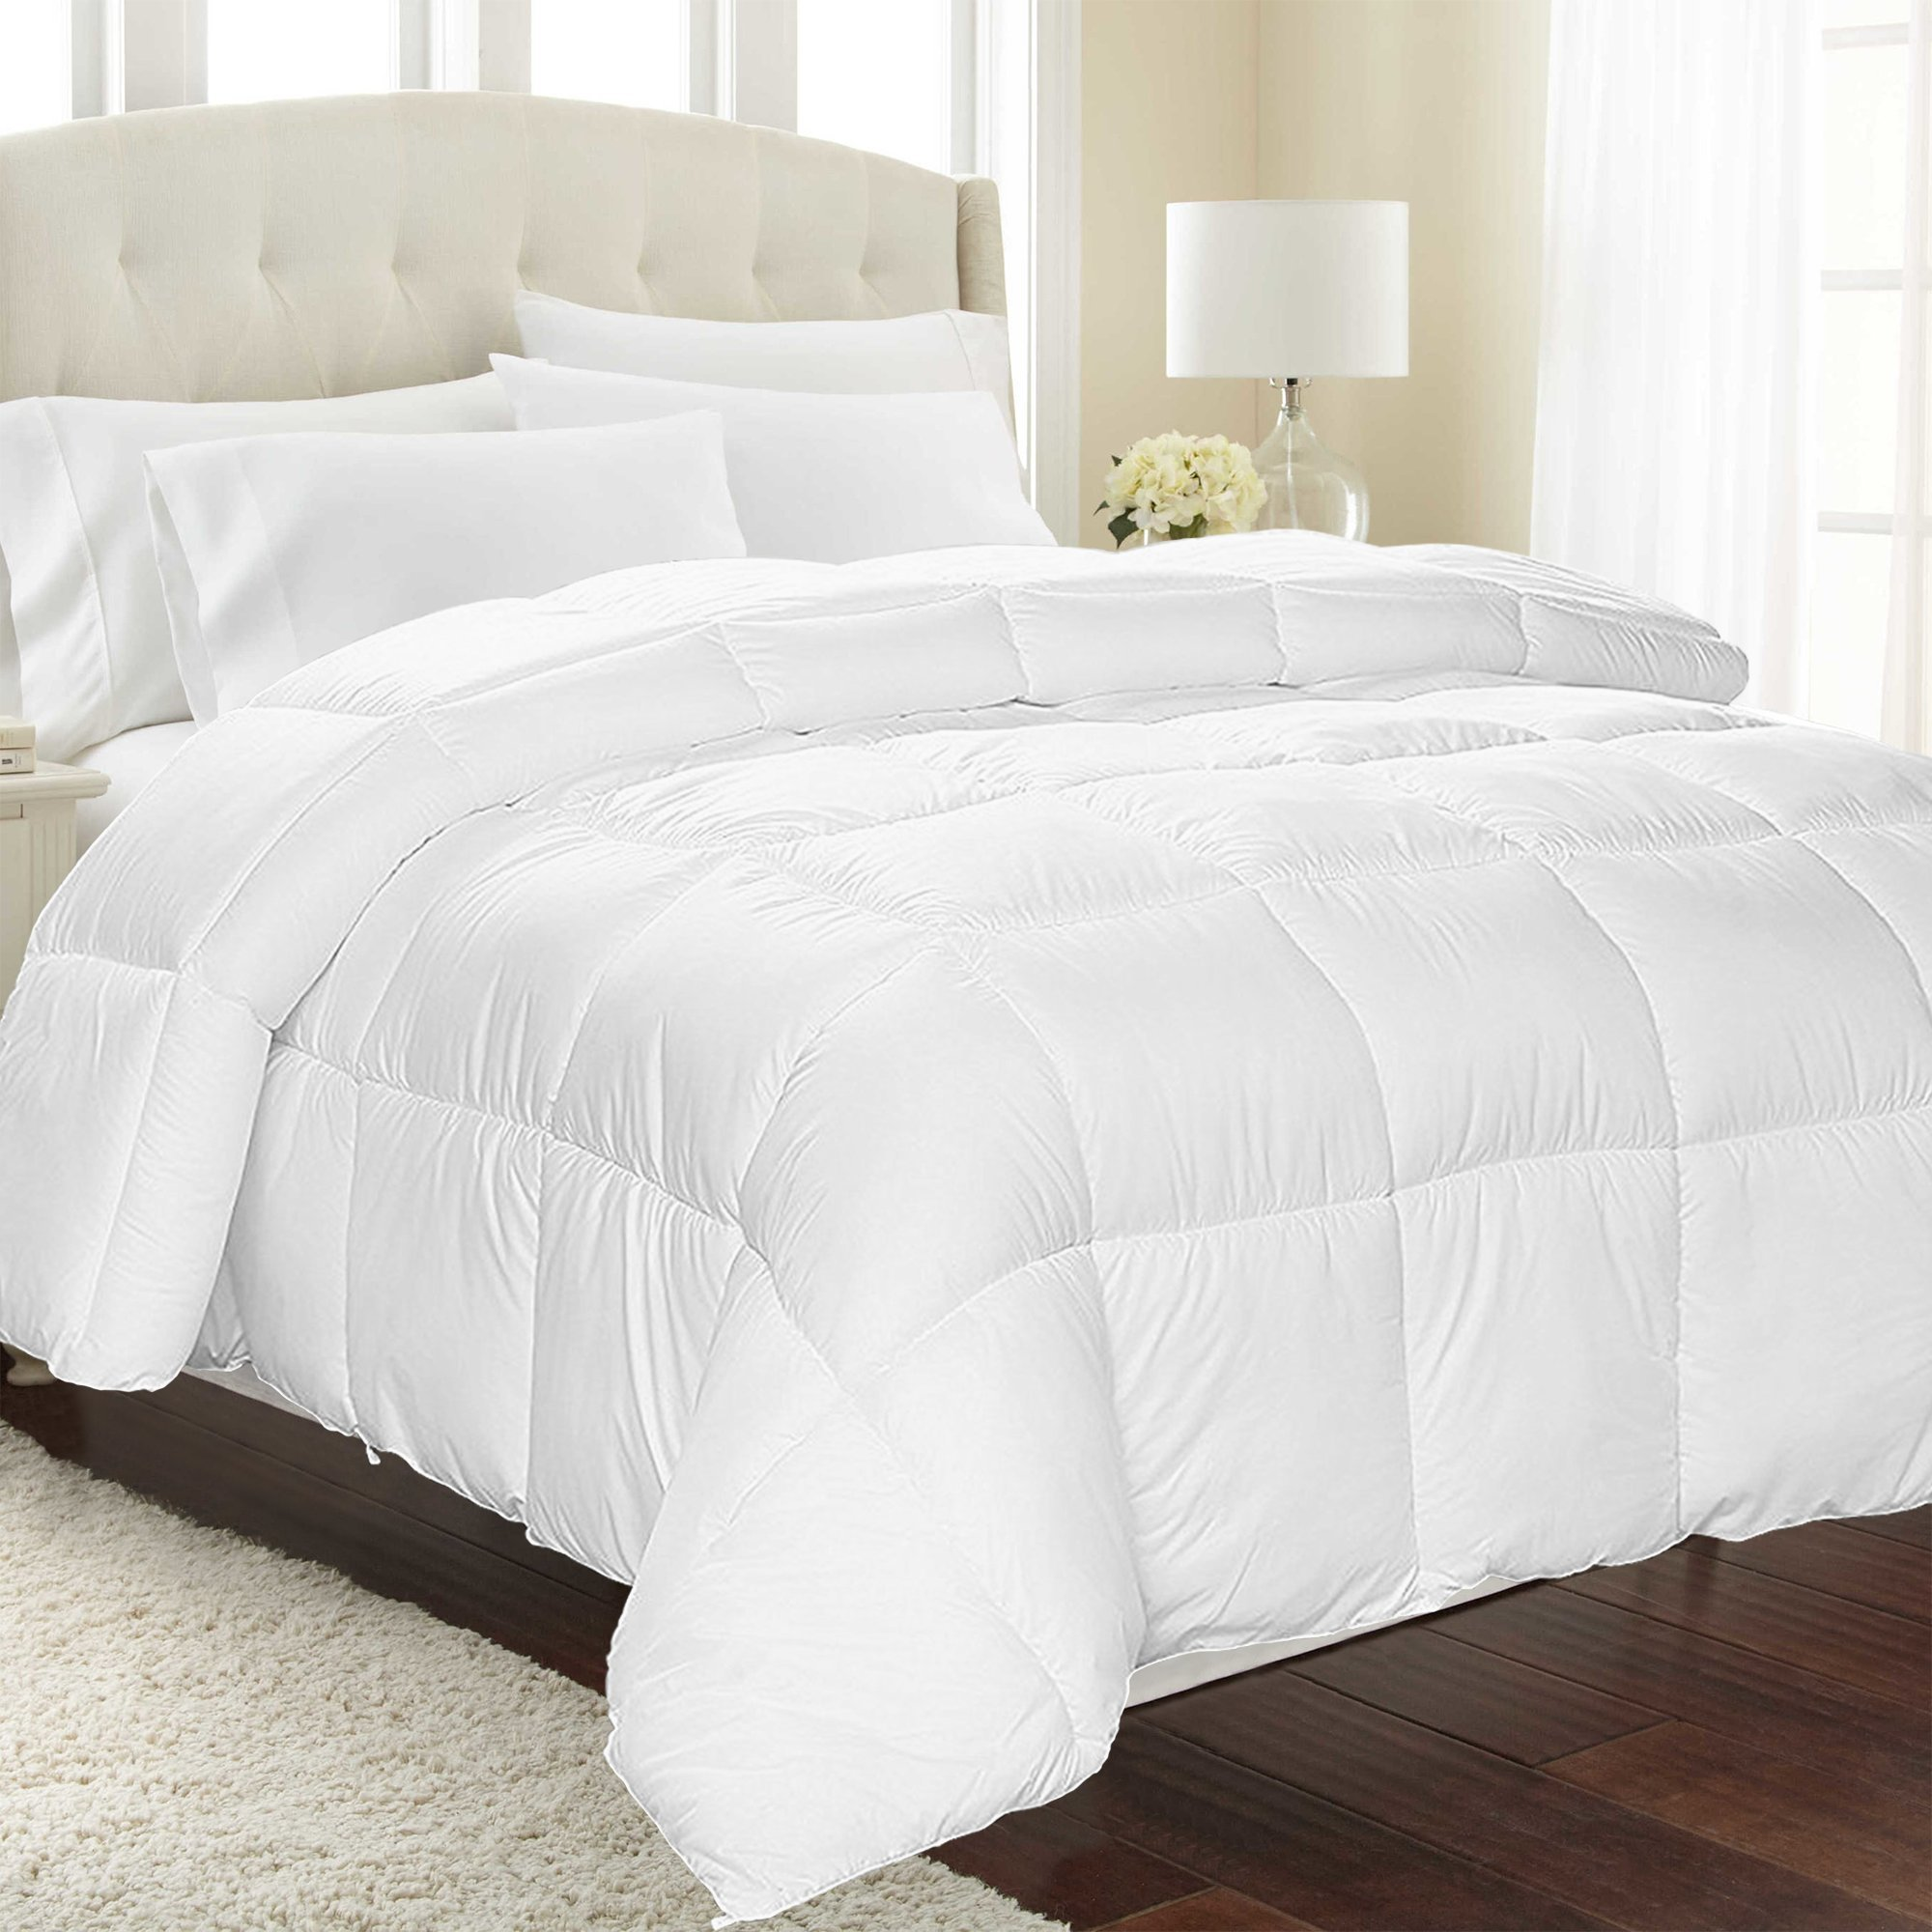 a comforter peach bag cfm duke set bed hayneedle product piece in chic queen home options